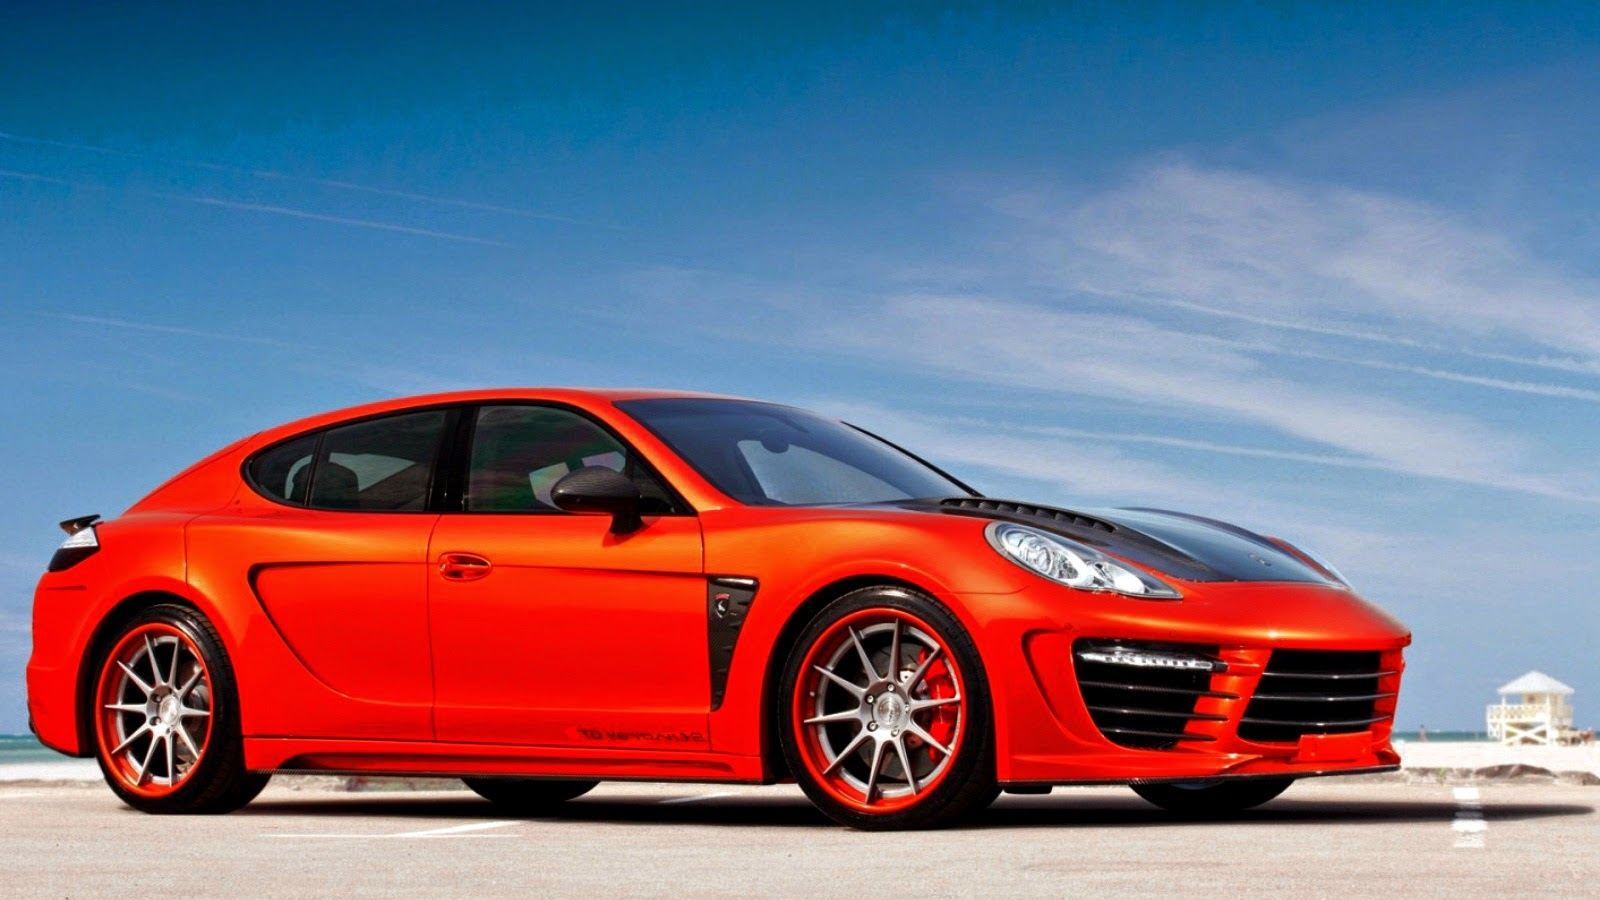 Porsche Panamera Stingray GTR Orange